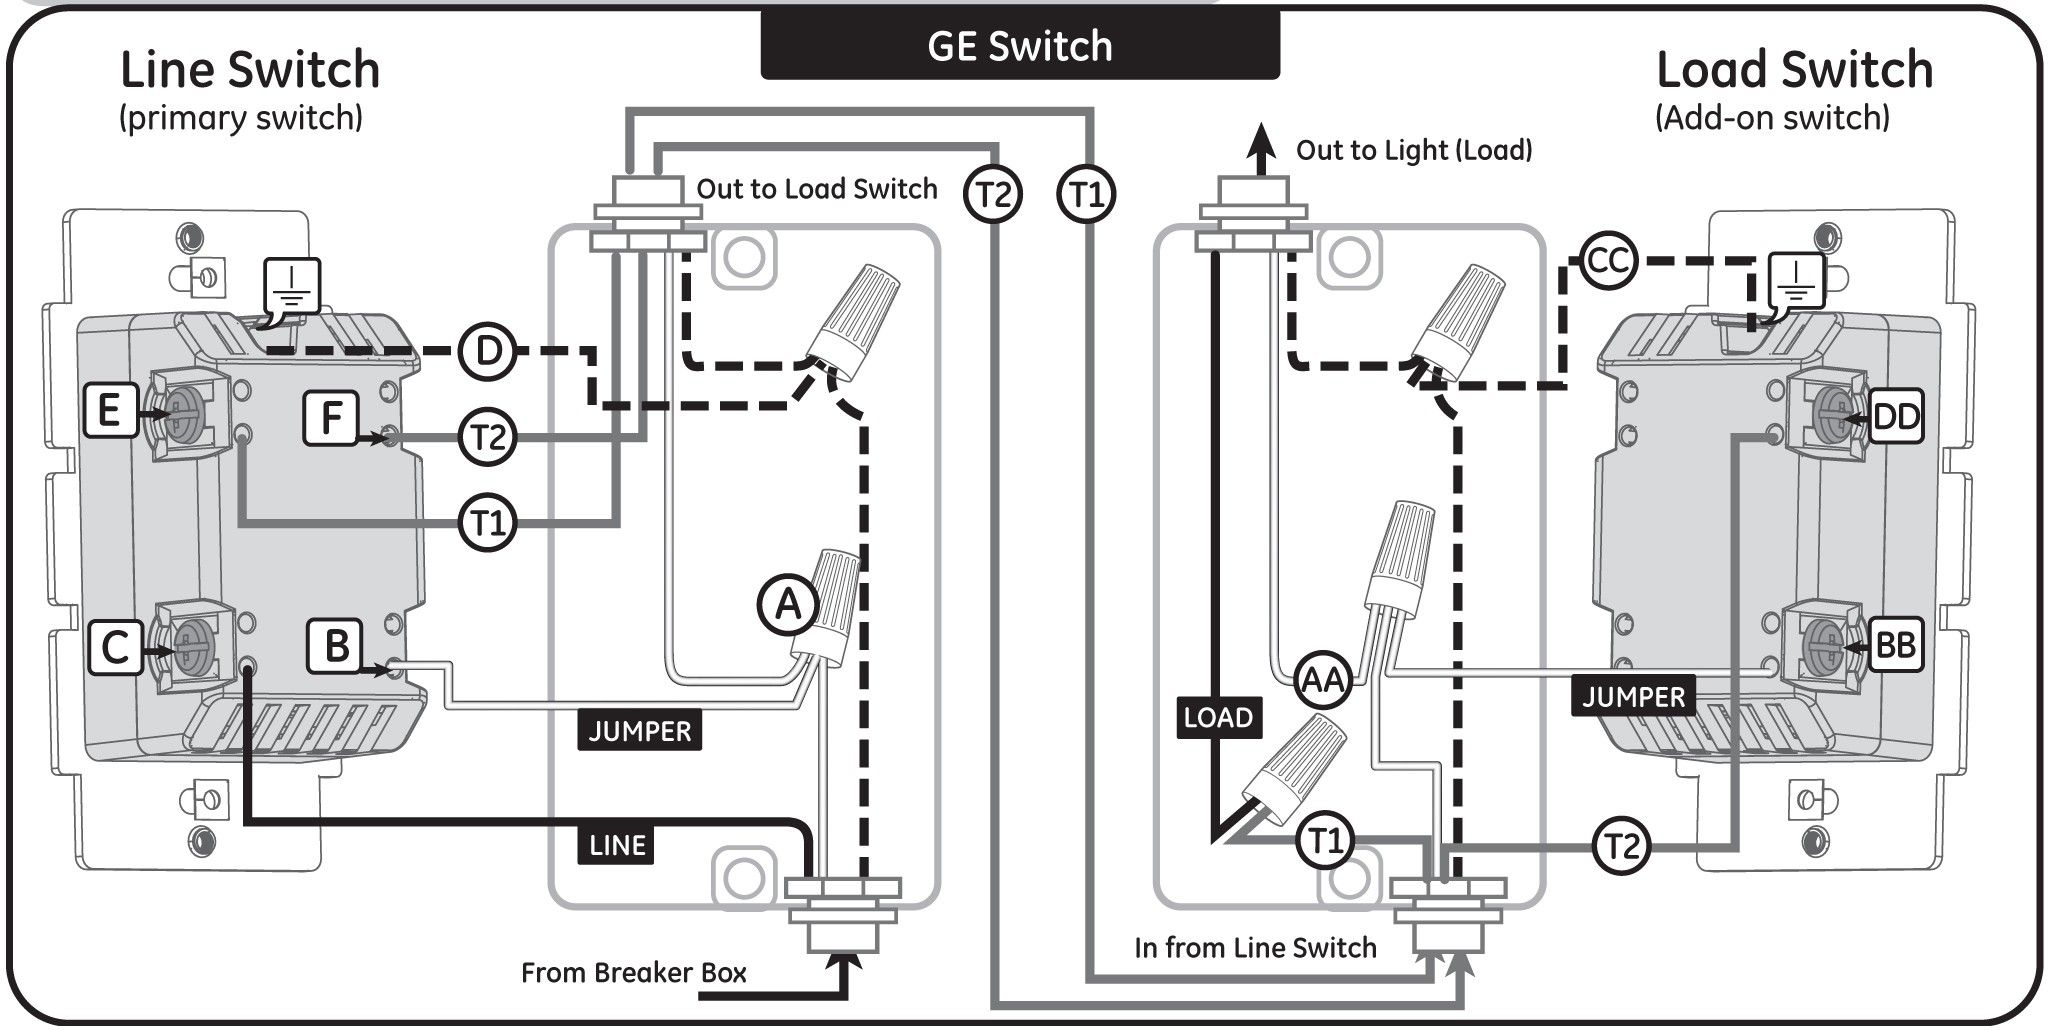 New Ge Dimmer Switch Wiring Diagram Diagram Diagramtemplate Diagramsample Plano Electrico Electronica Planos